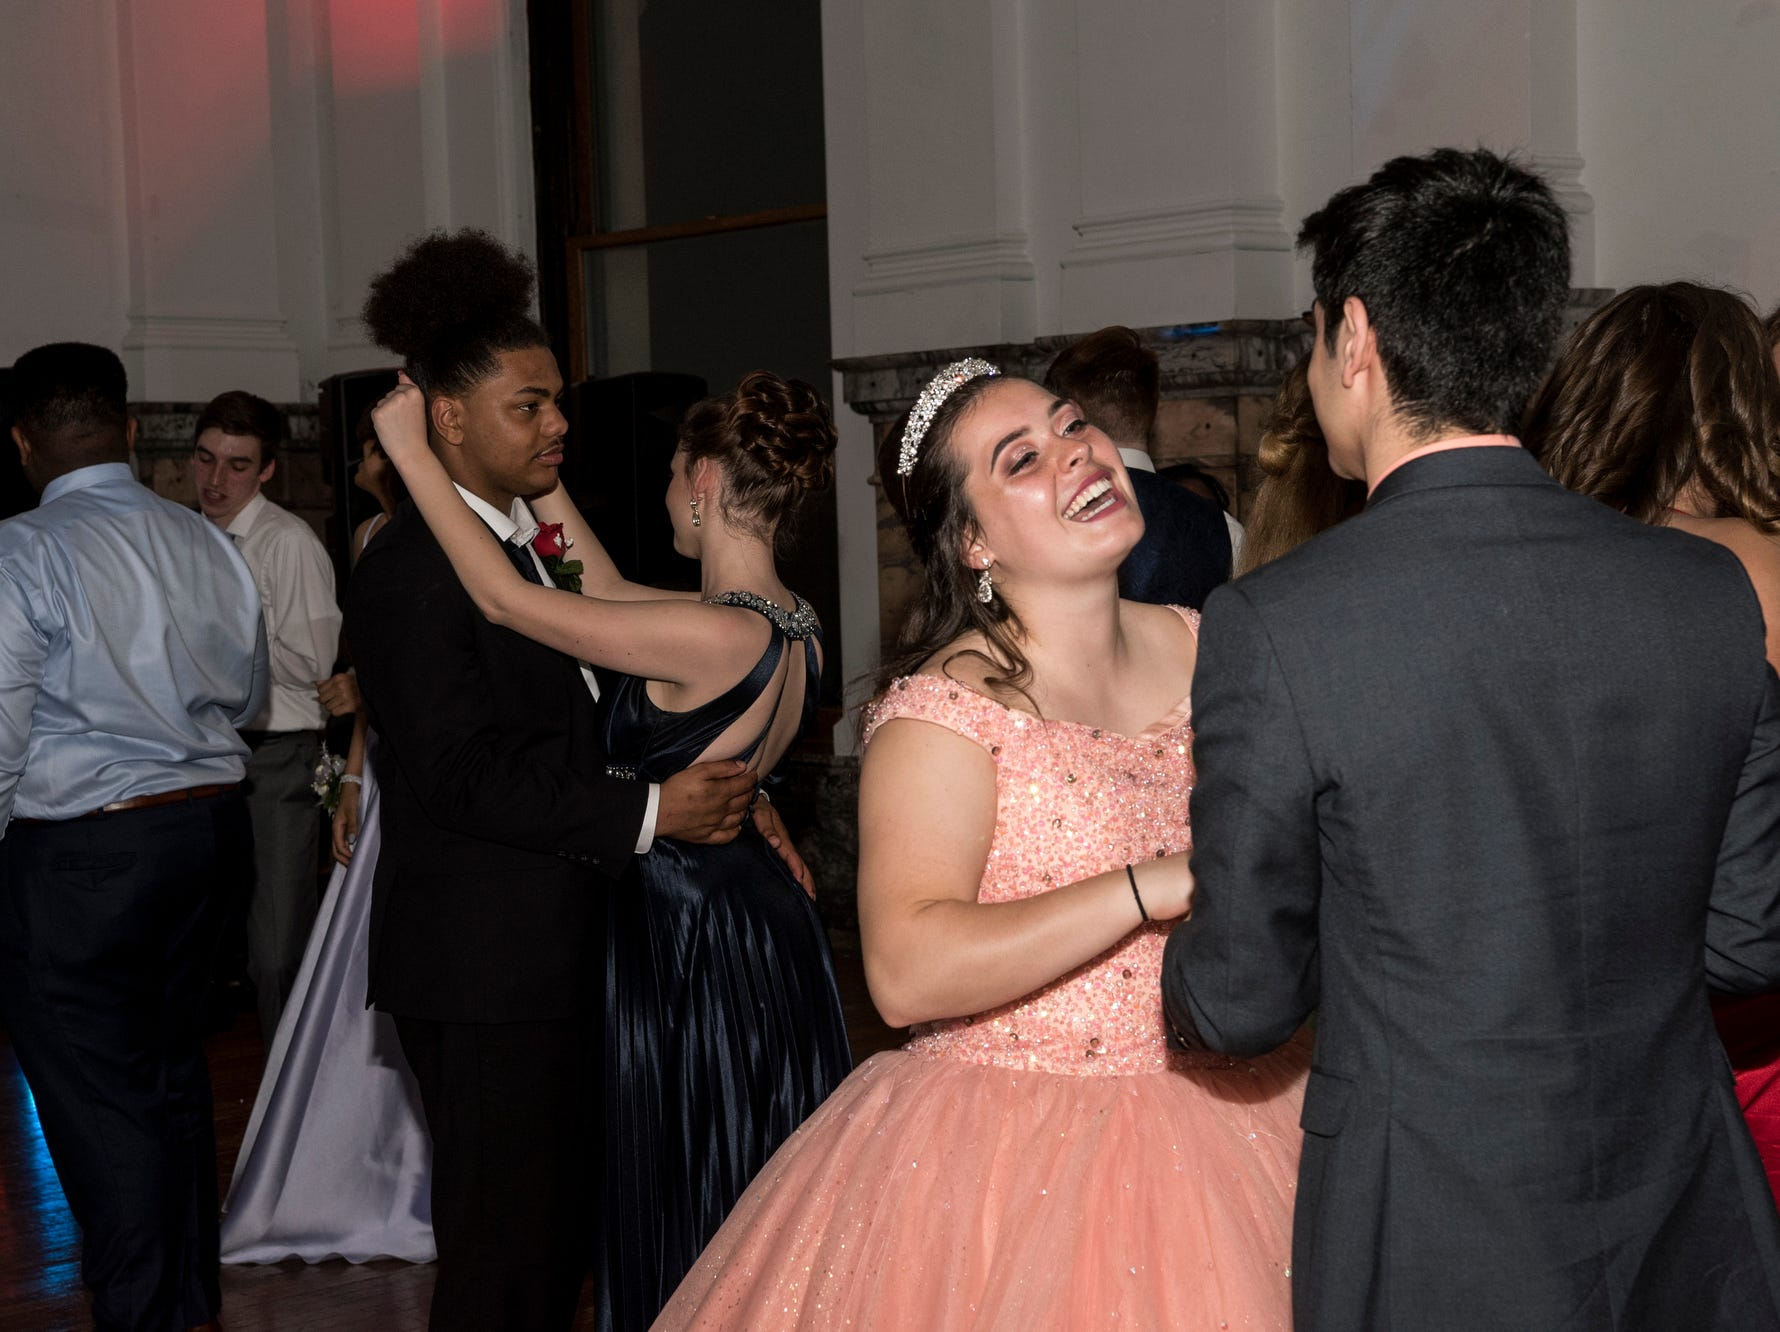 Alexa Wheeler, front left, and Junior Ordaz, front right, laugh and dance together during Bosse High School's prom at the Old Vanderburgh County Courthouse in downtown Evansville, Ind., Saturday, April 6, 2019.